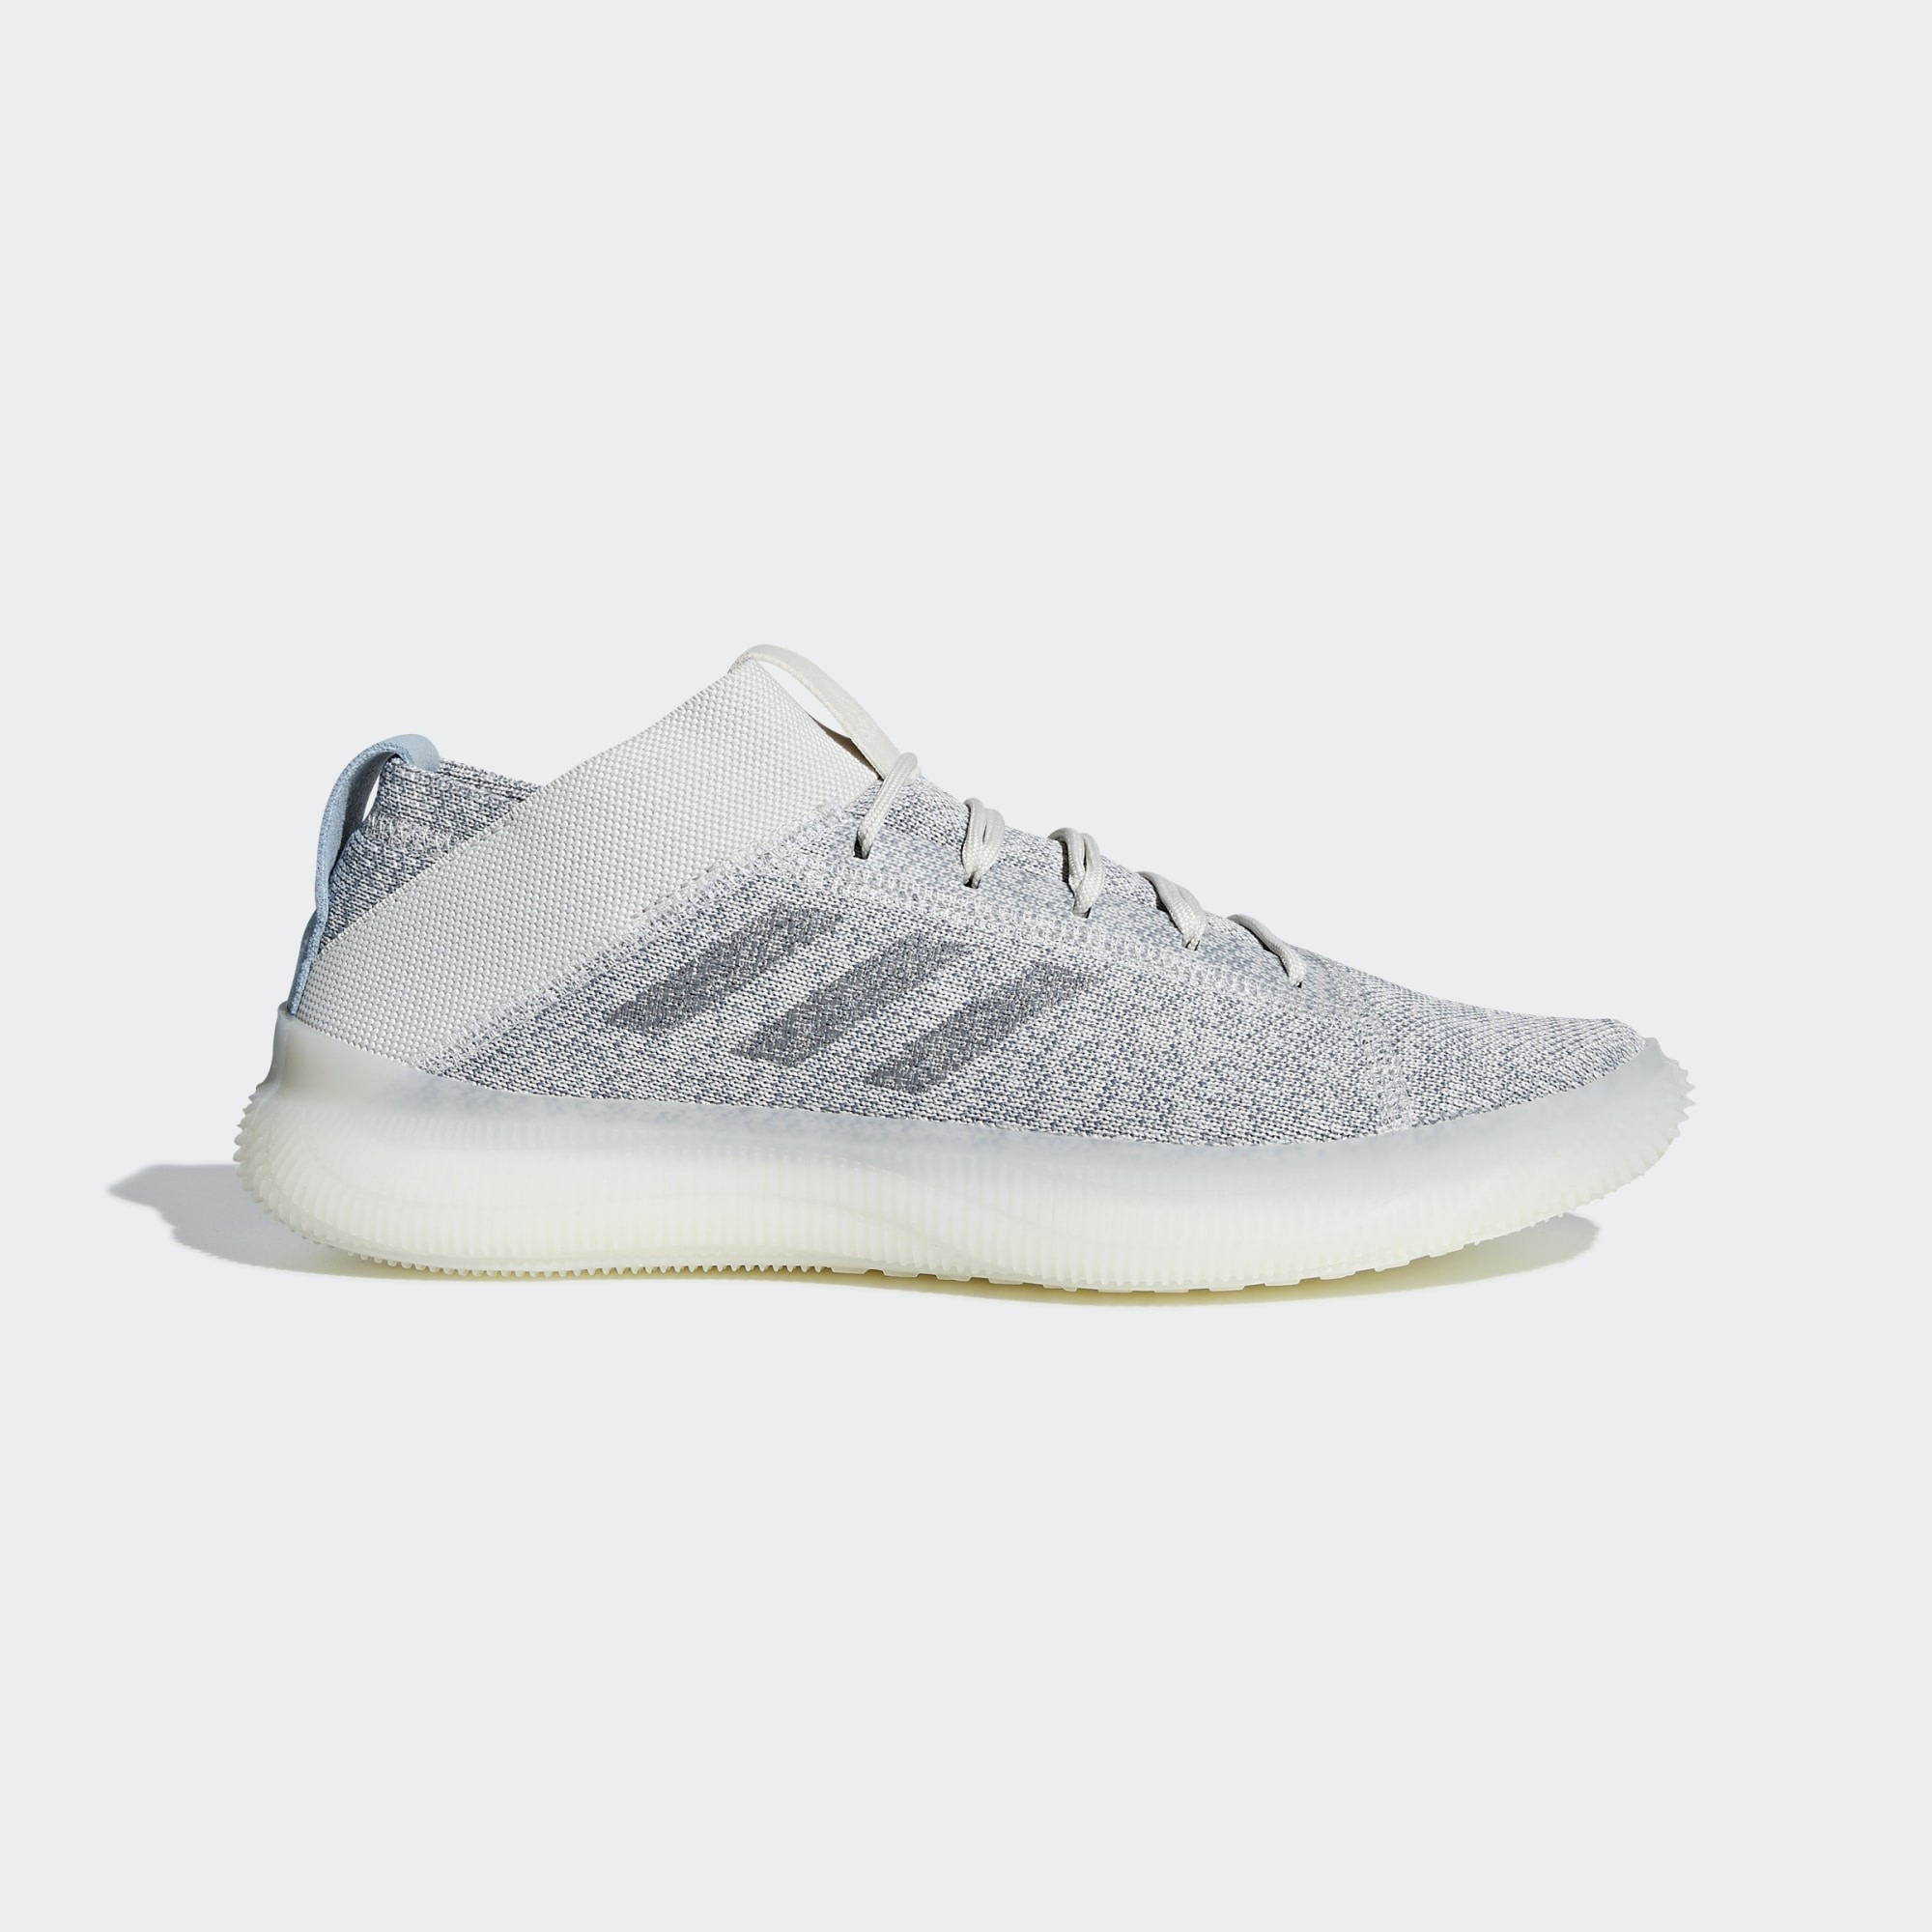 Adidas Men Pure Boost Trainer Shoes Raw White/Grey BB7212